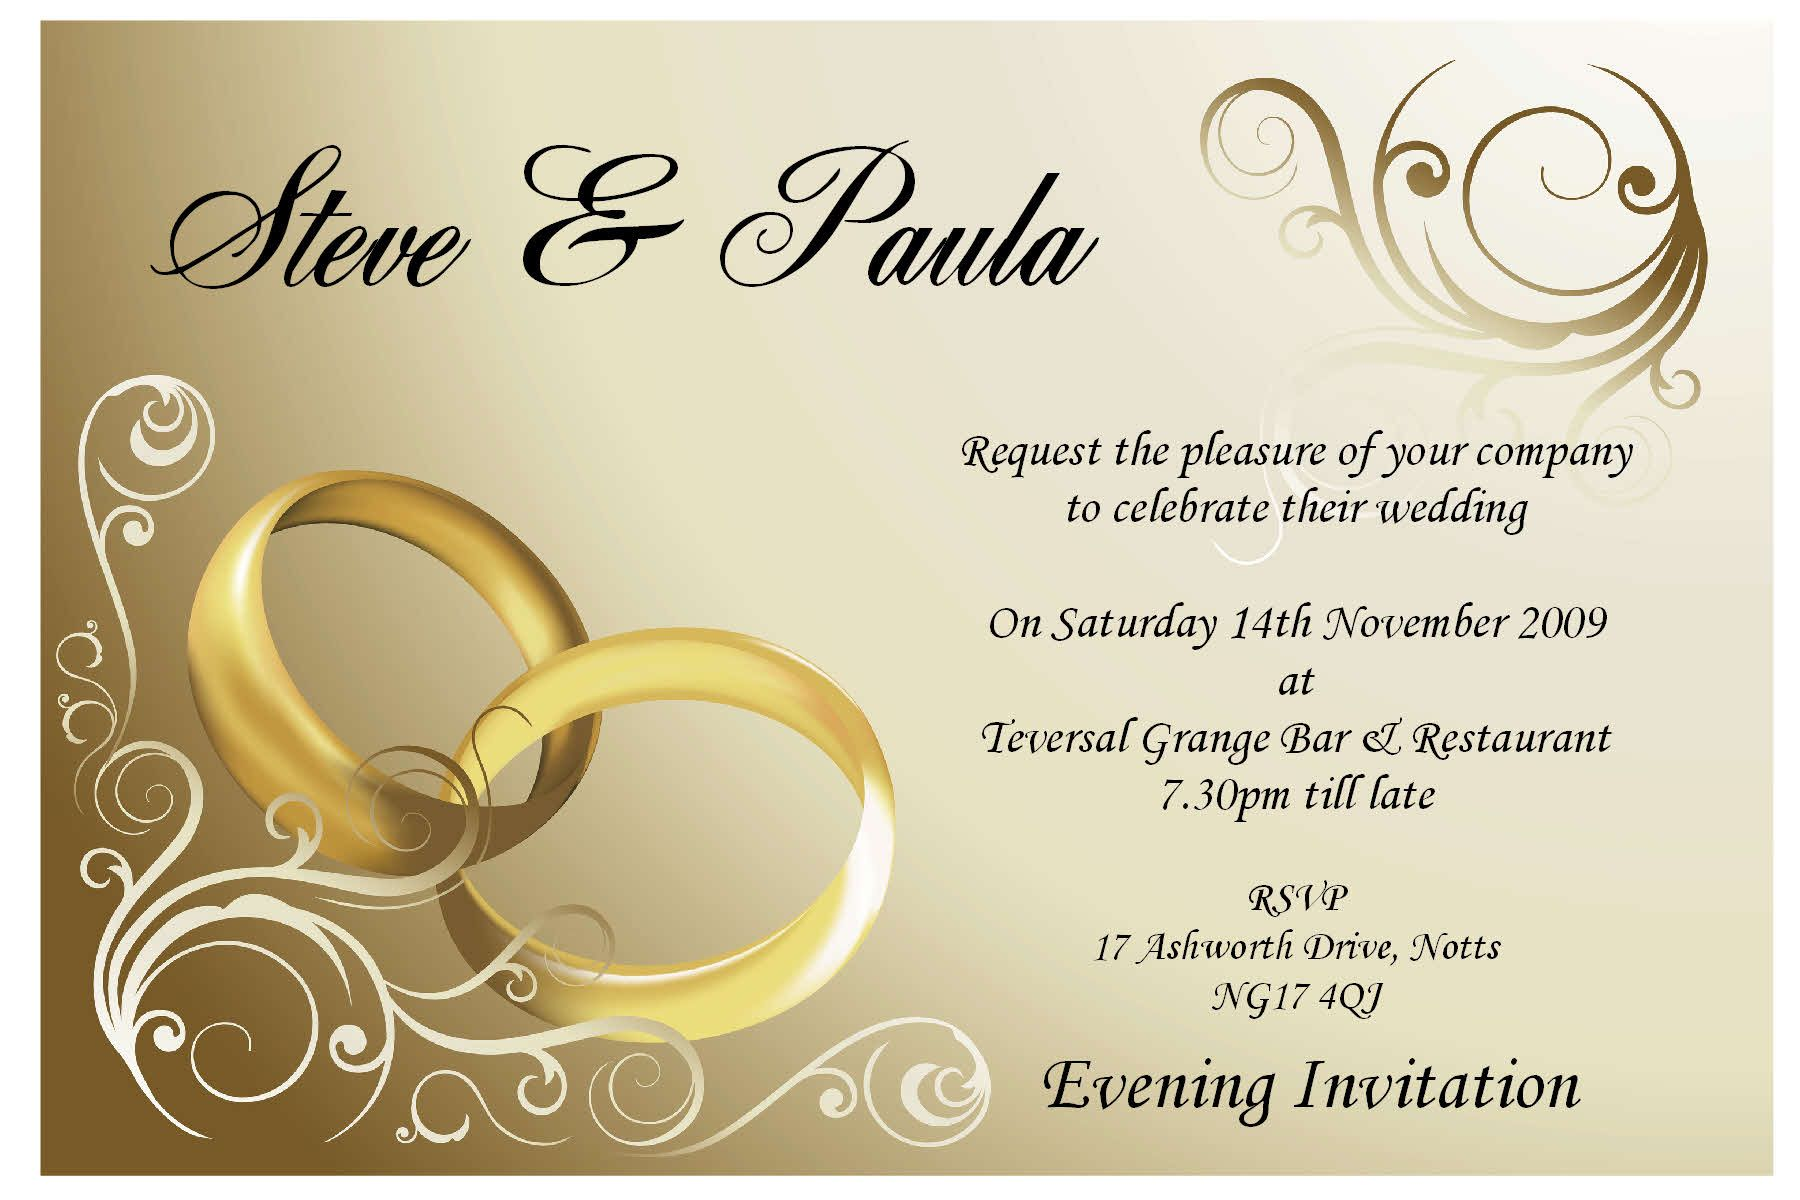 Invitation Wedding Card: Affordable Wedding Invitation Card